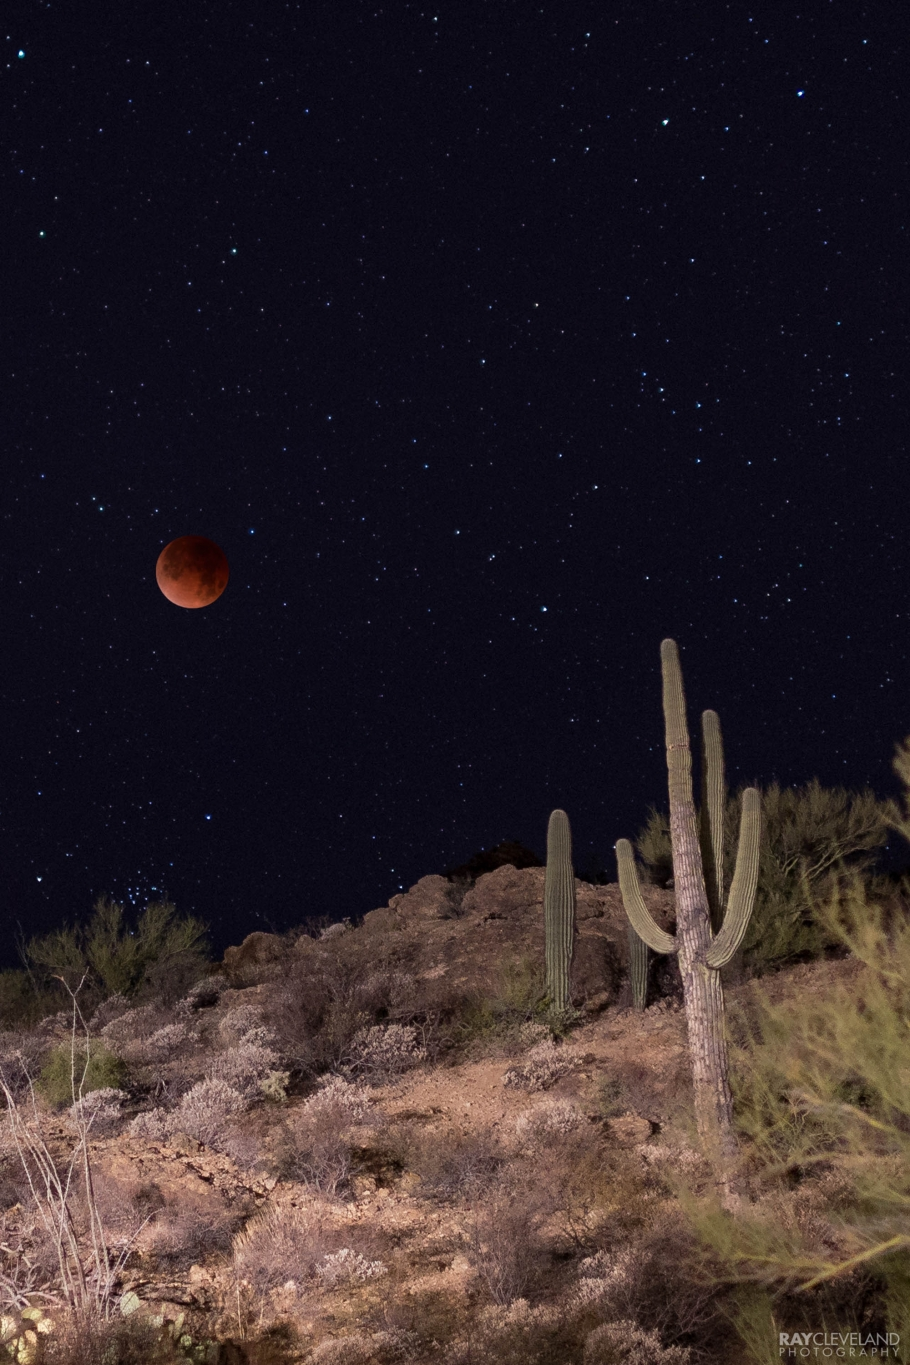 Composite of the desert and blood moon. The foreground was lit by incoming cars.